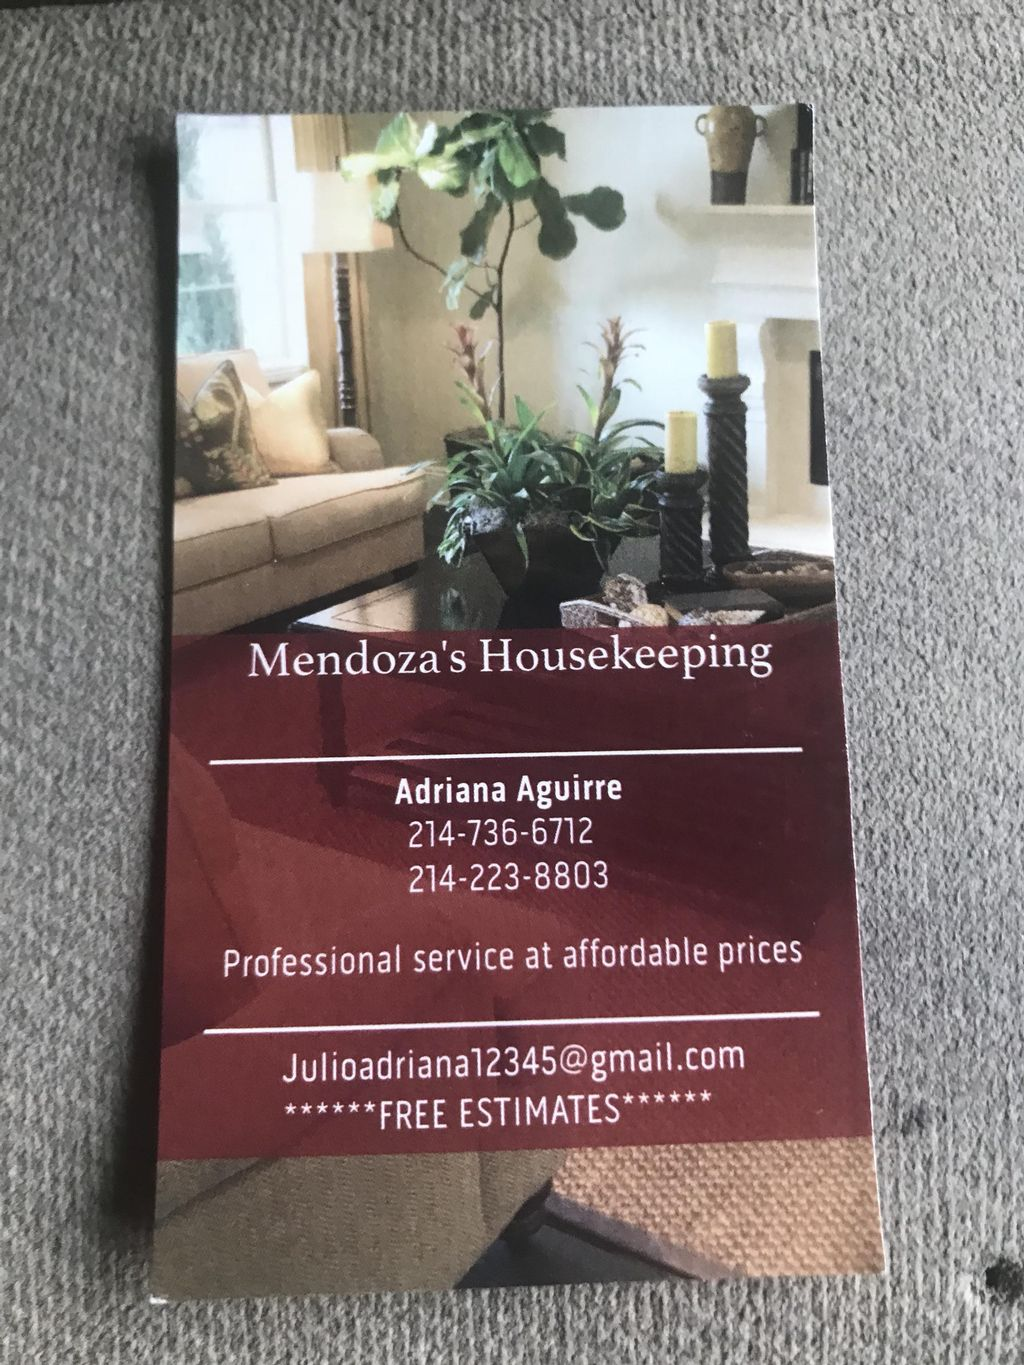 Mendoza's Housekeeping